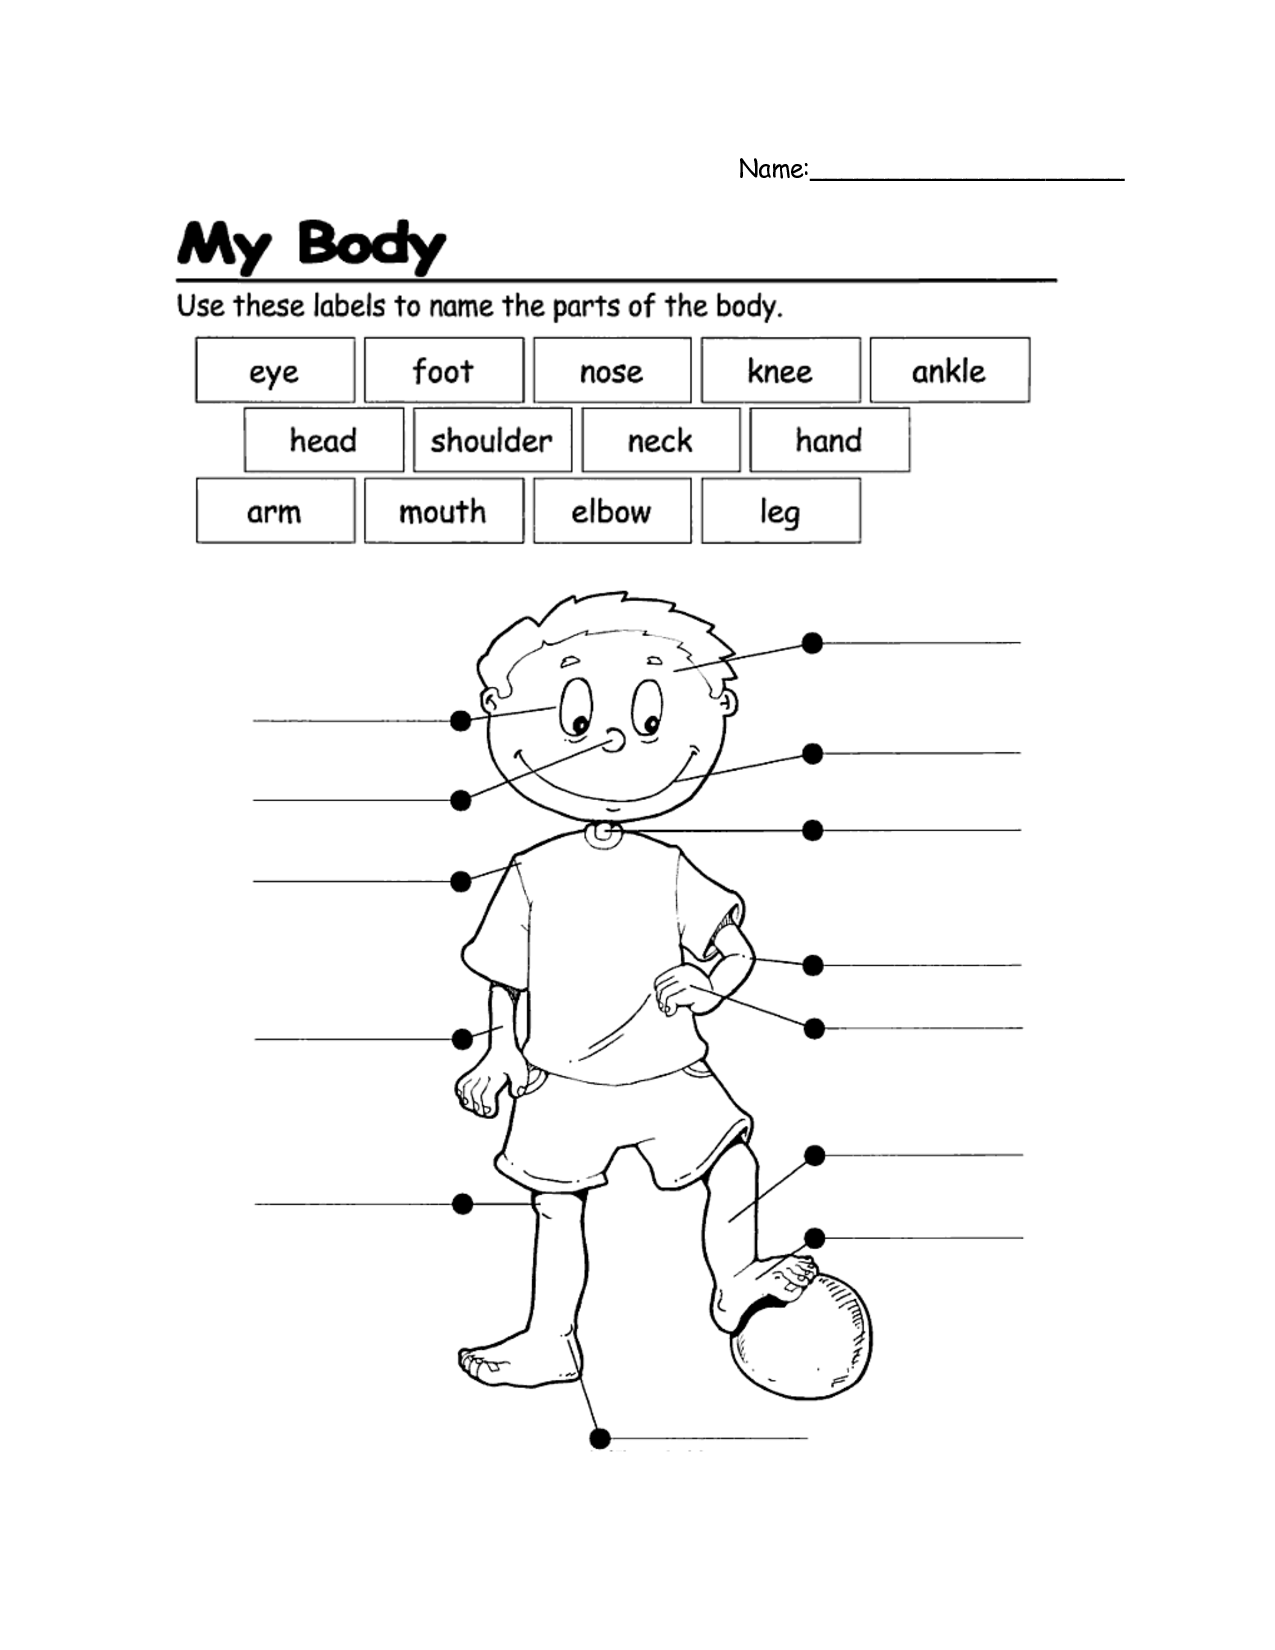 Worksheets Worksheet-parts-of-body name parts of the body first grade yahoo image search results results